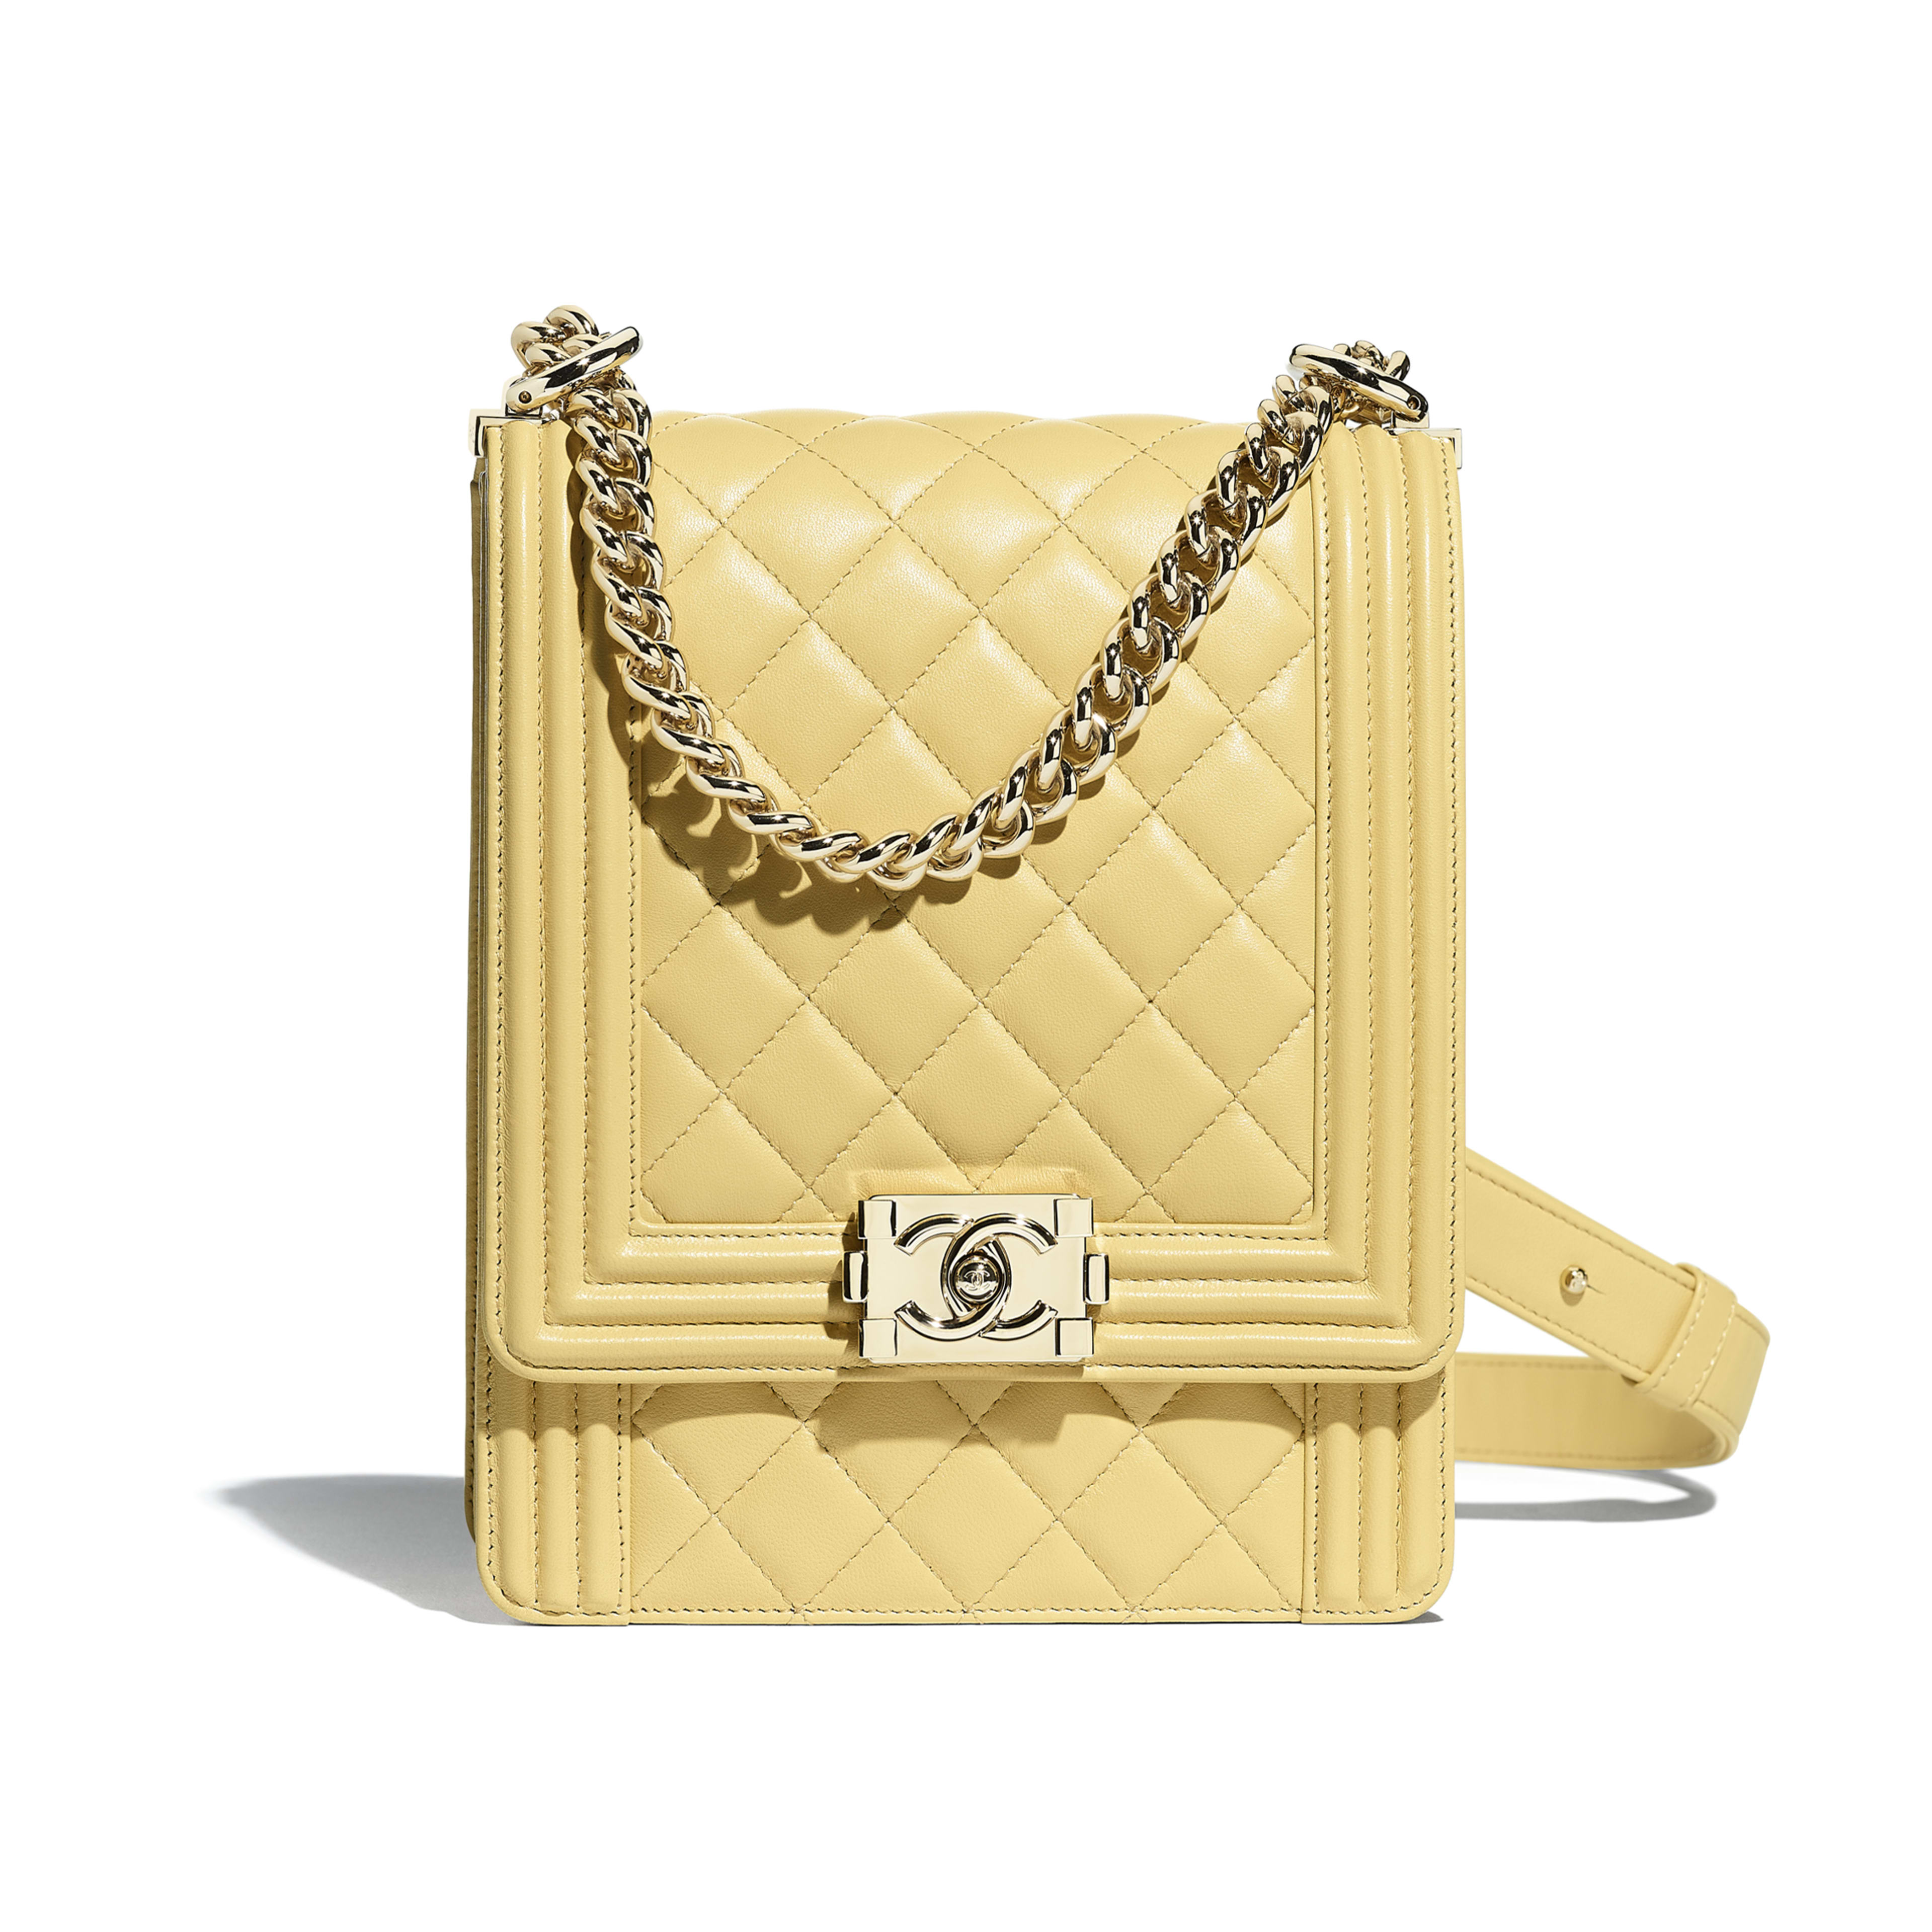 BOY CHANEL Handbag - Yellow - Calfskin & Gold-Tone Metal - Default view - see full sized version